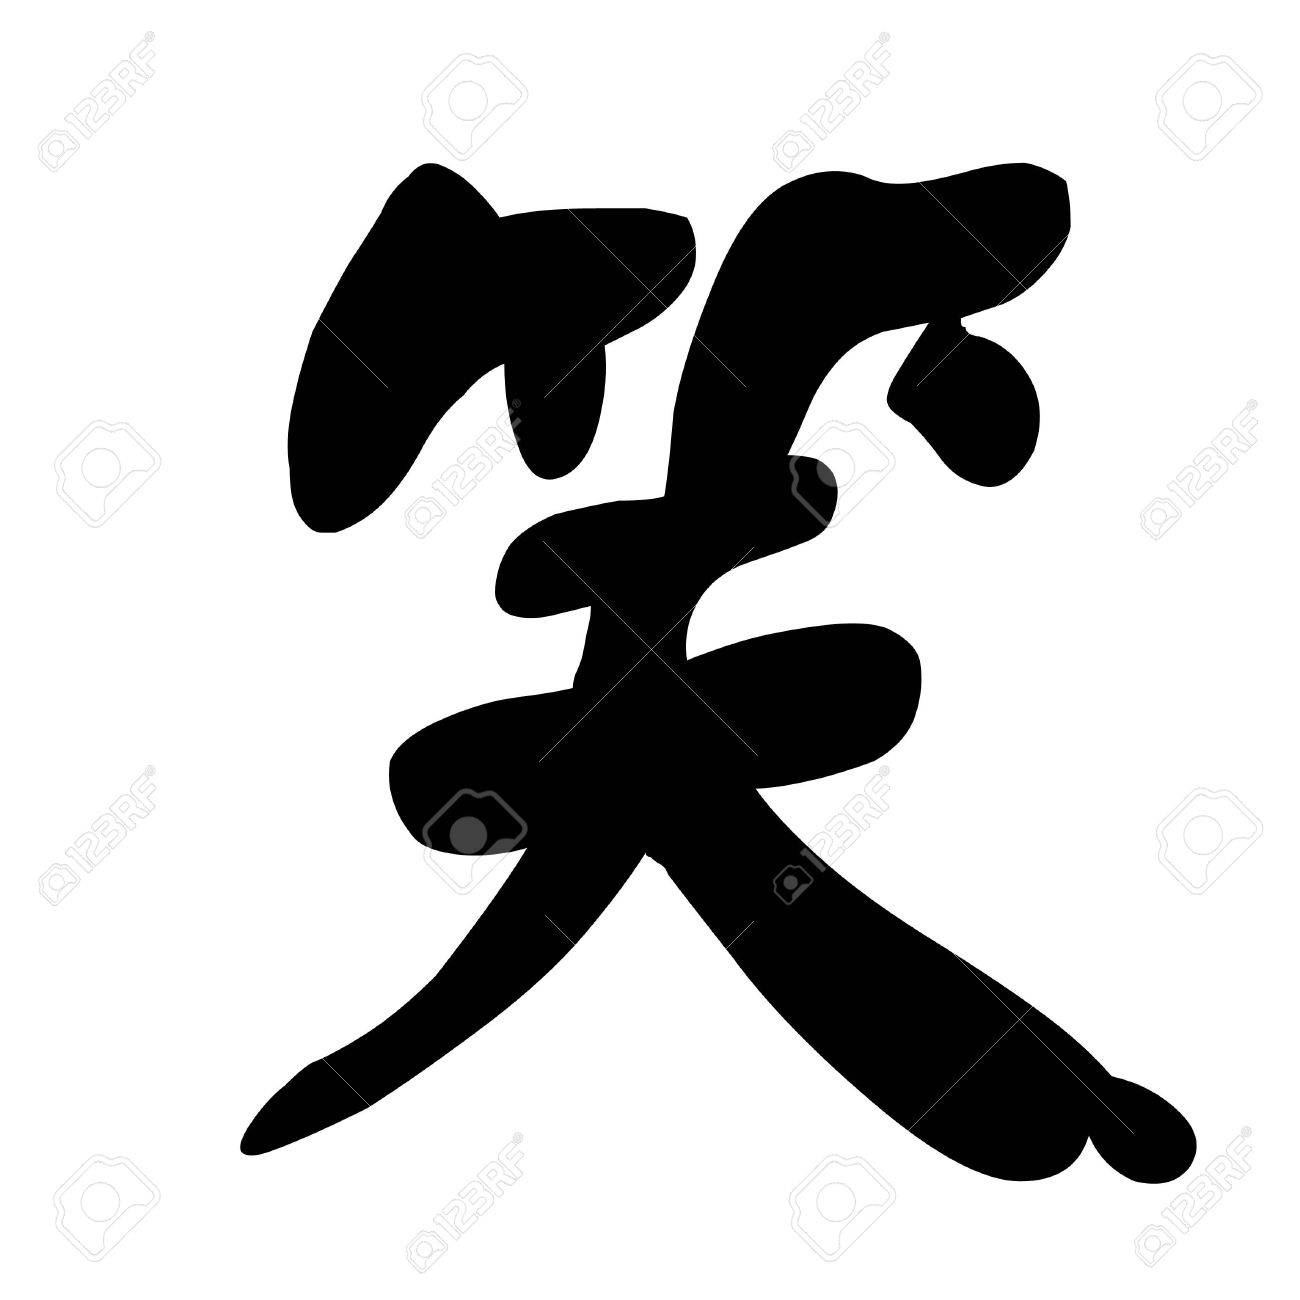 Chinese Calligraphy Character Laugh Stock Photo - 7678455